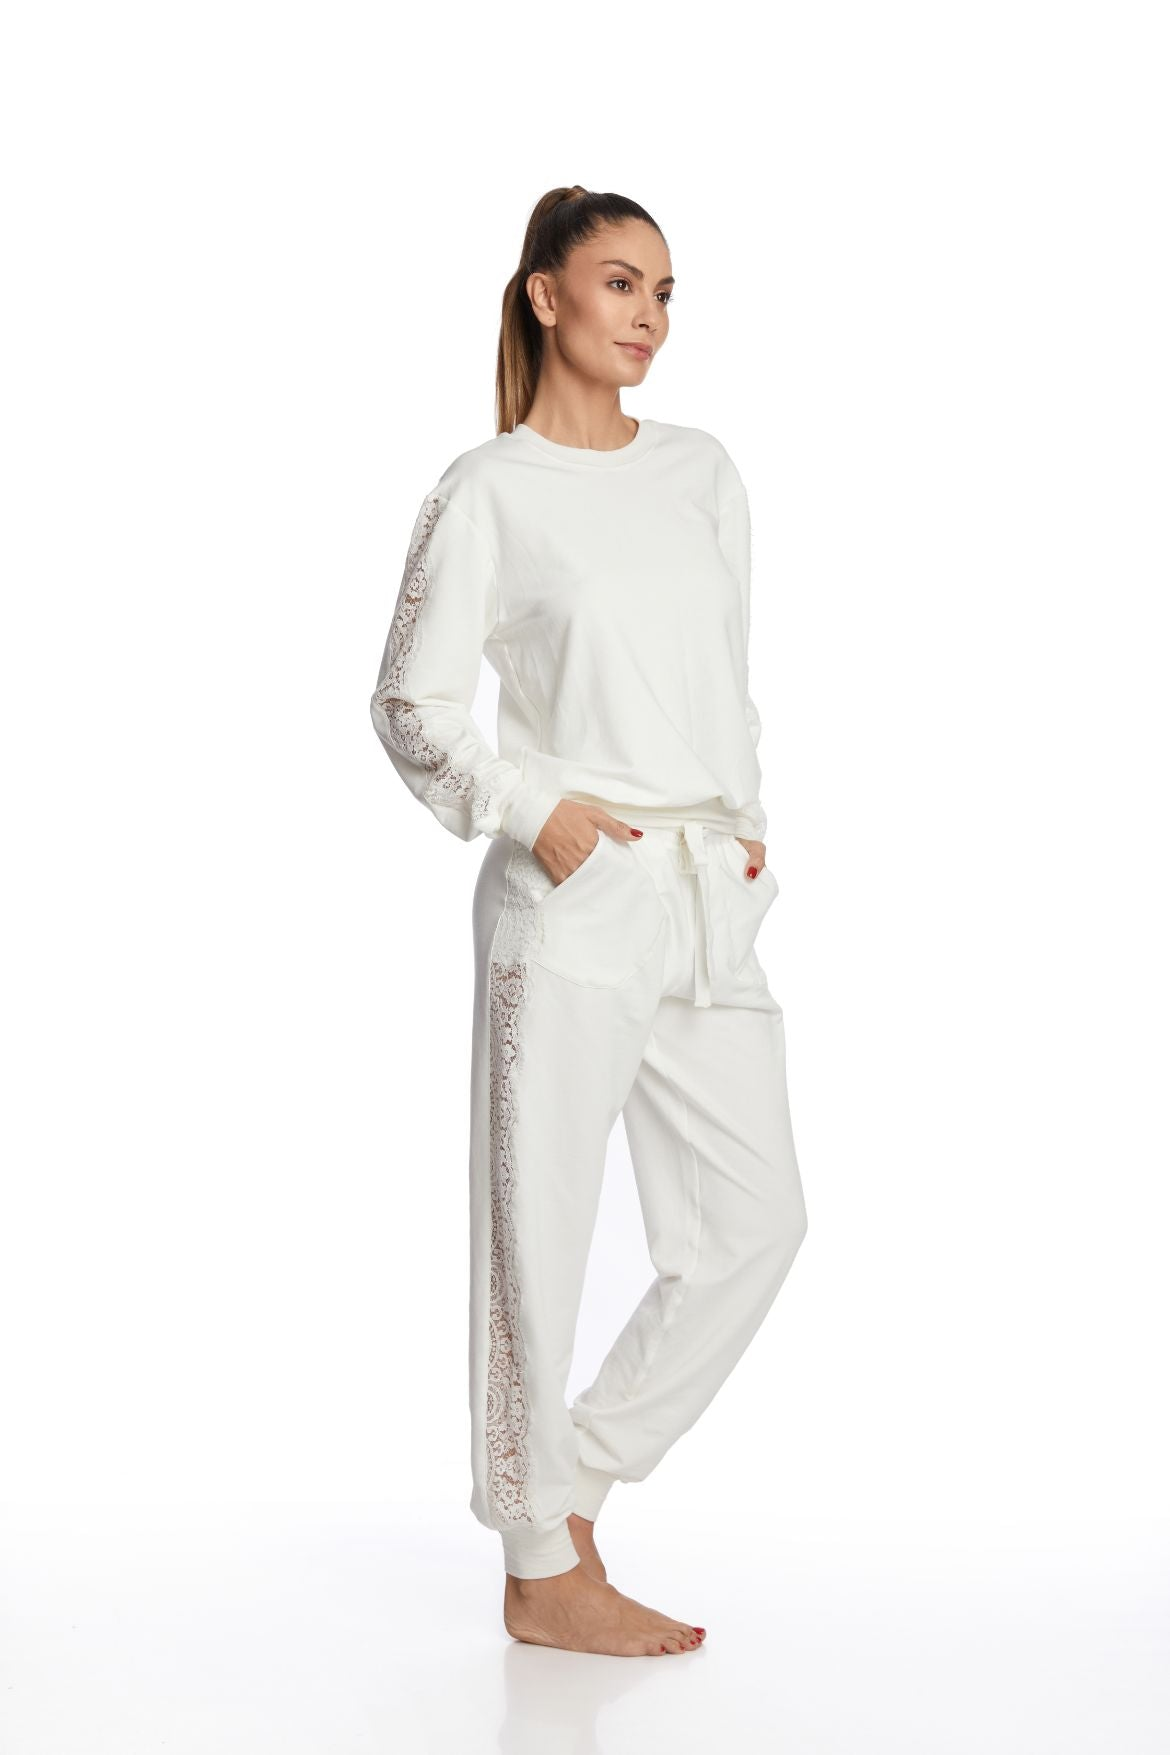 I.D. Sarrieri Modal and lace long sleeve loungewear top